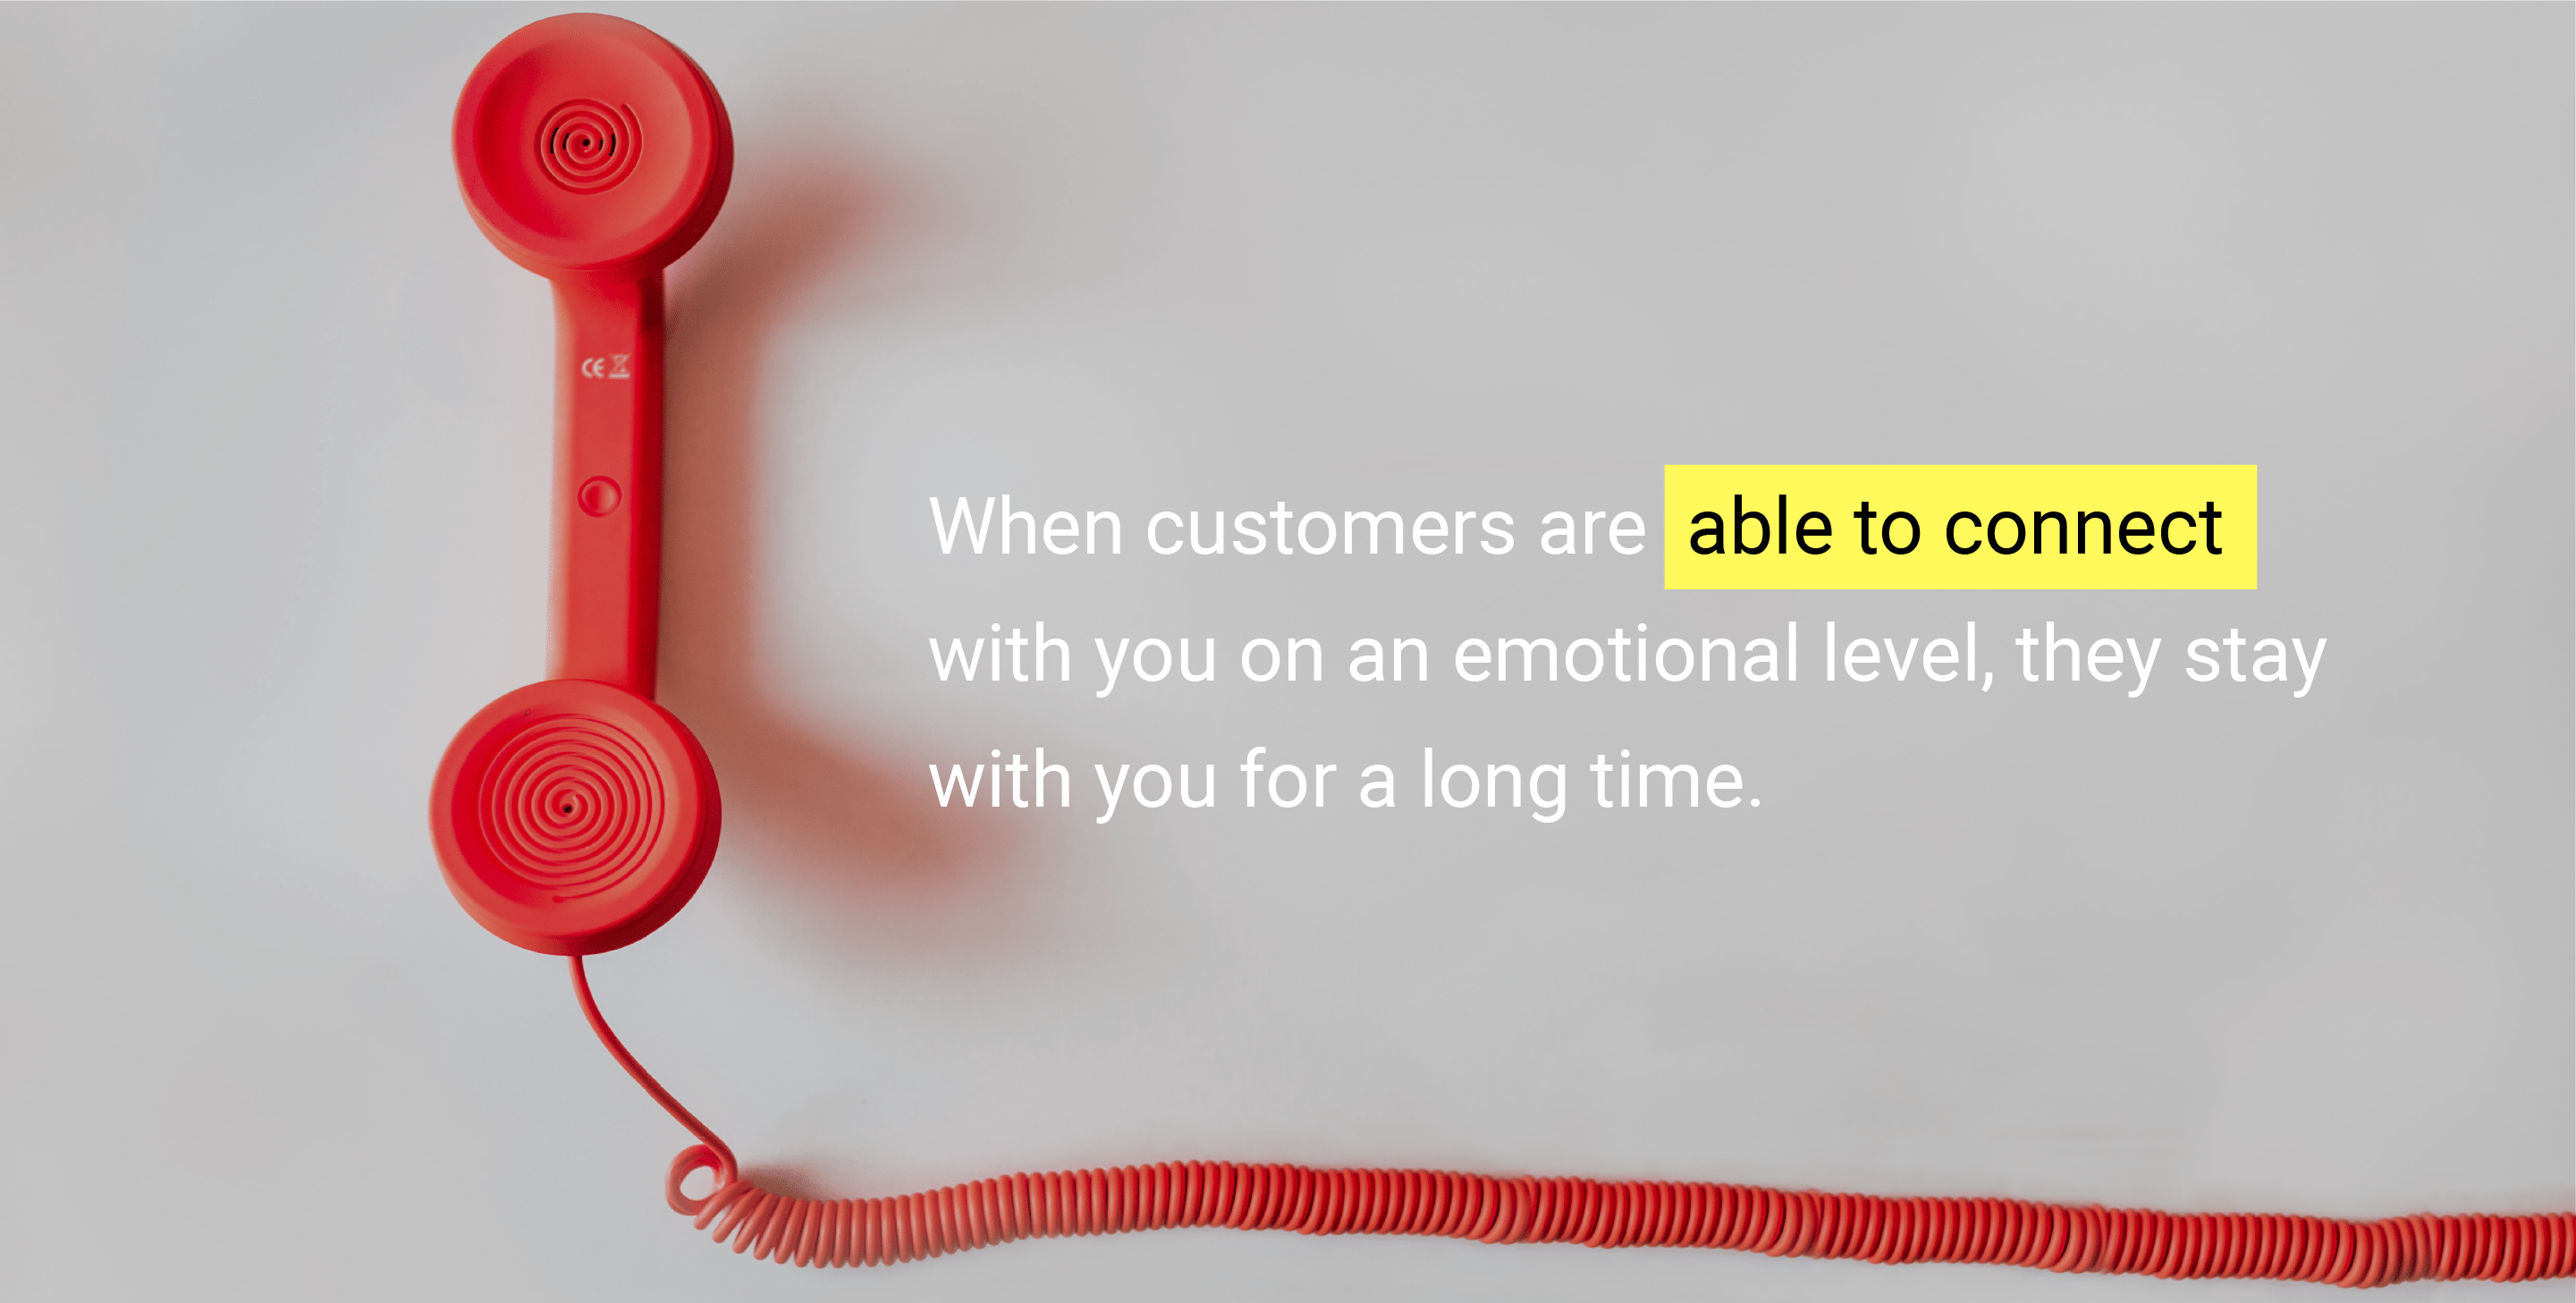 When customers are able to connect with your brand on an emotional level, they stay with you for a long time.